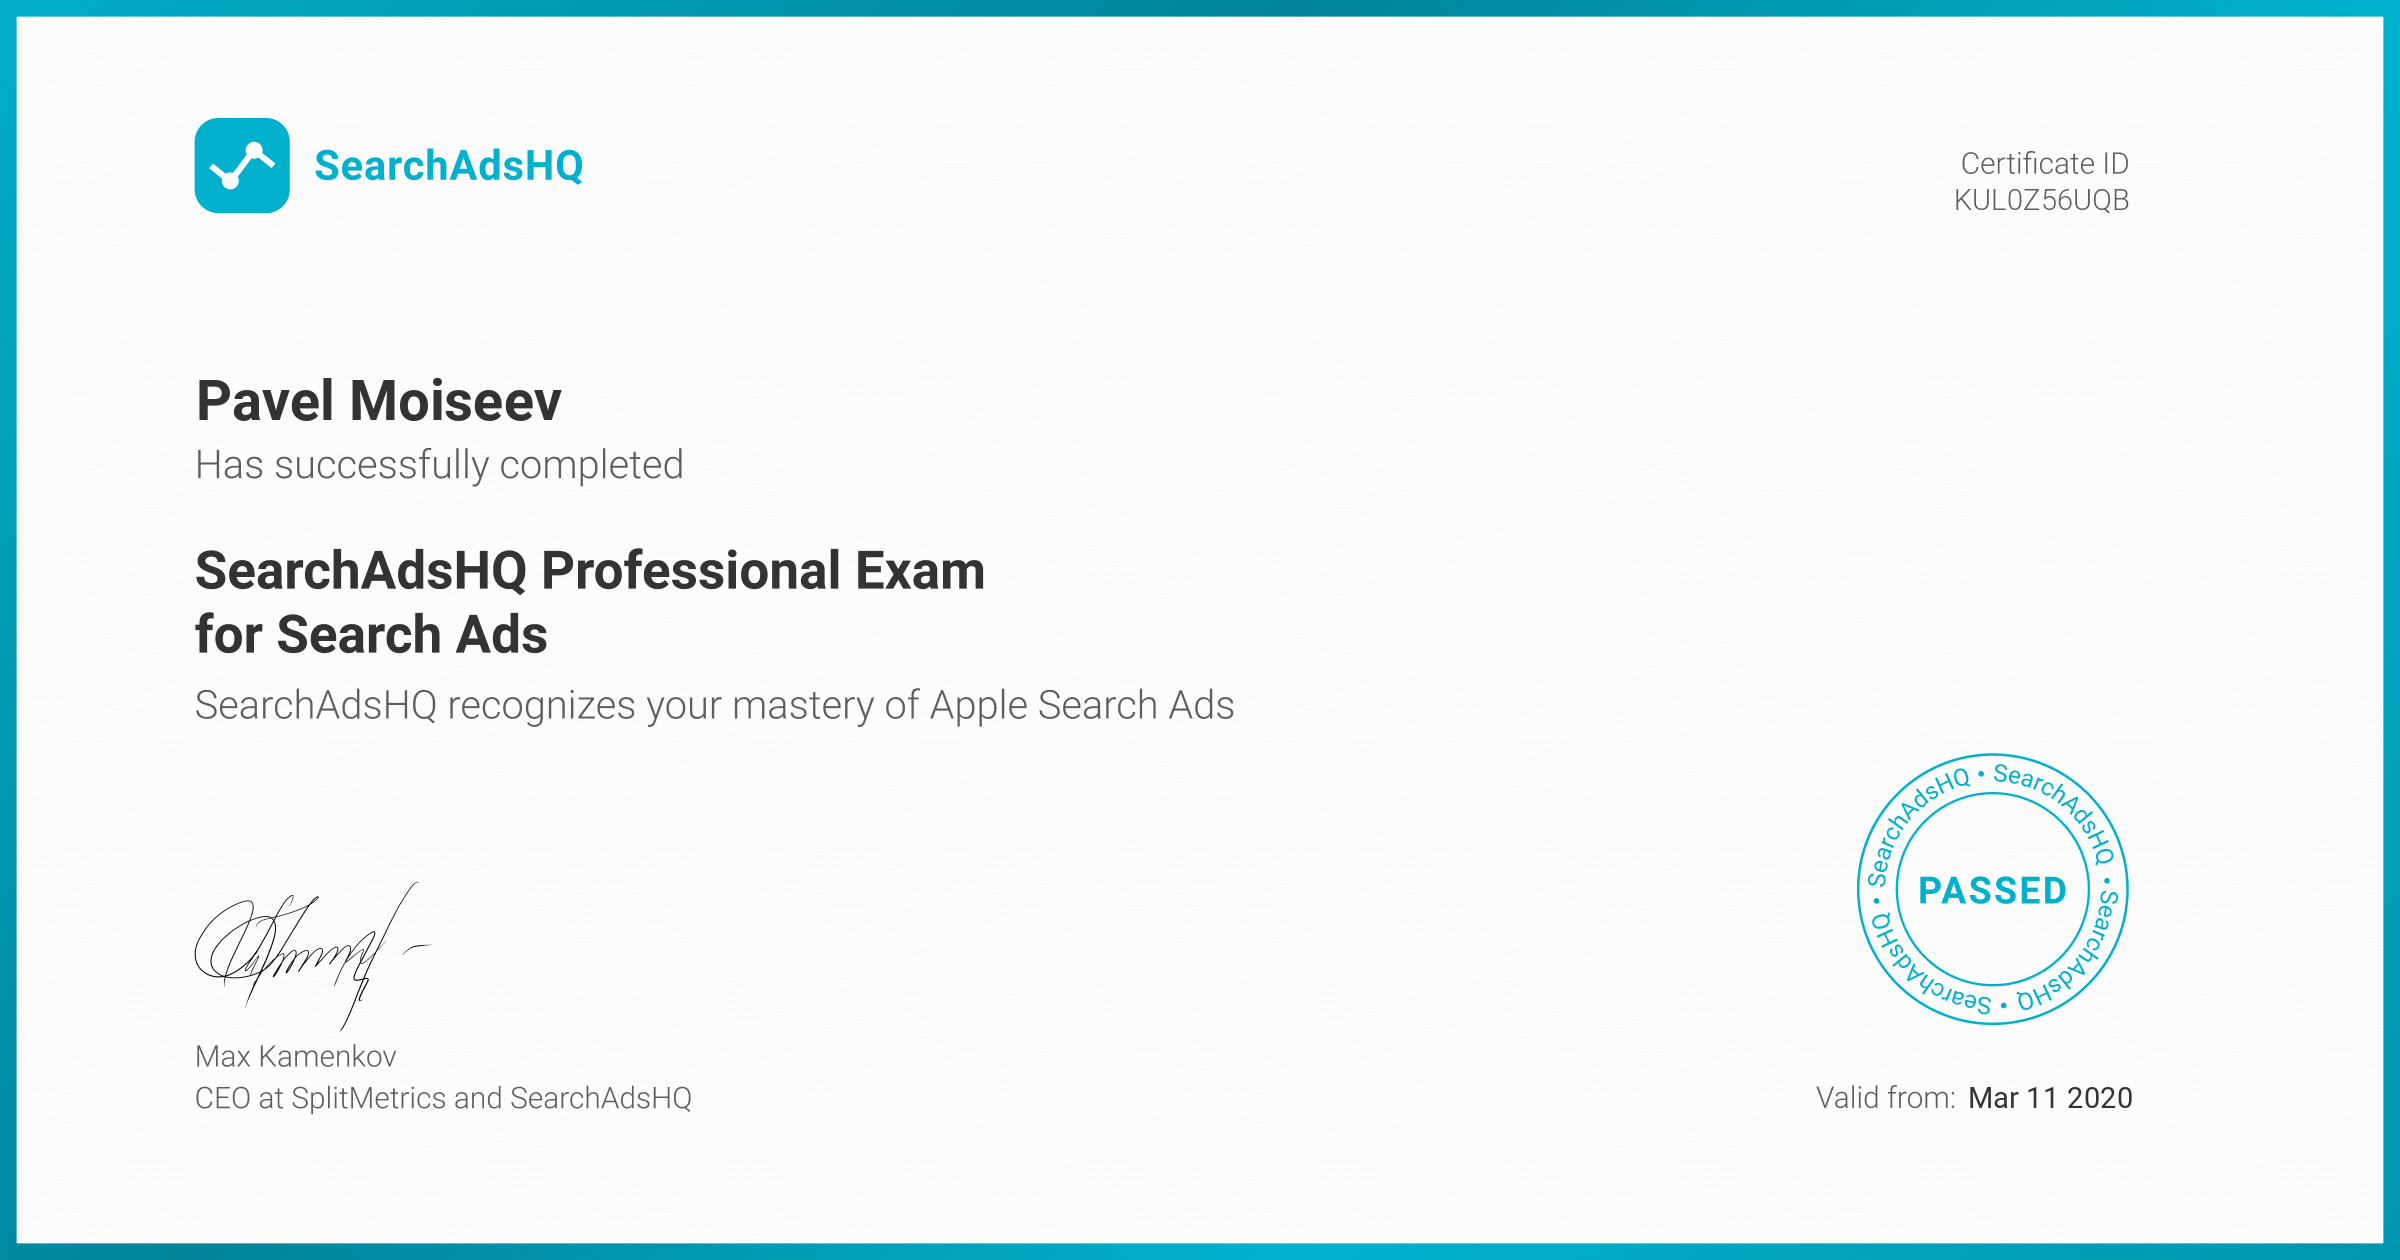 Certificate for Pavel Moiseev | SearchAdsHQ Professional Exam for Search Ads